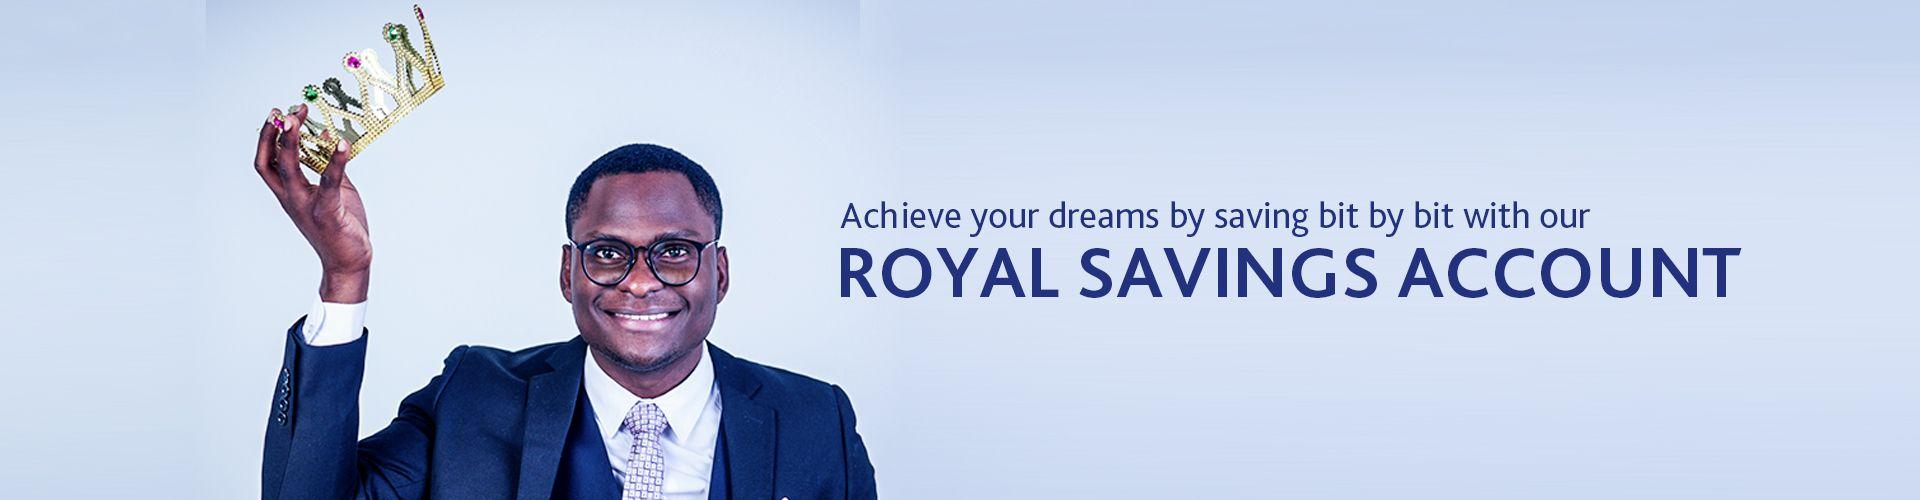 Royal Savings Account